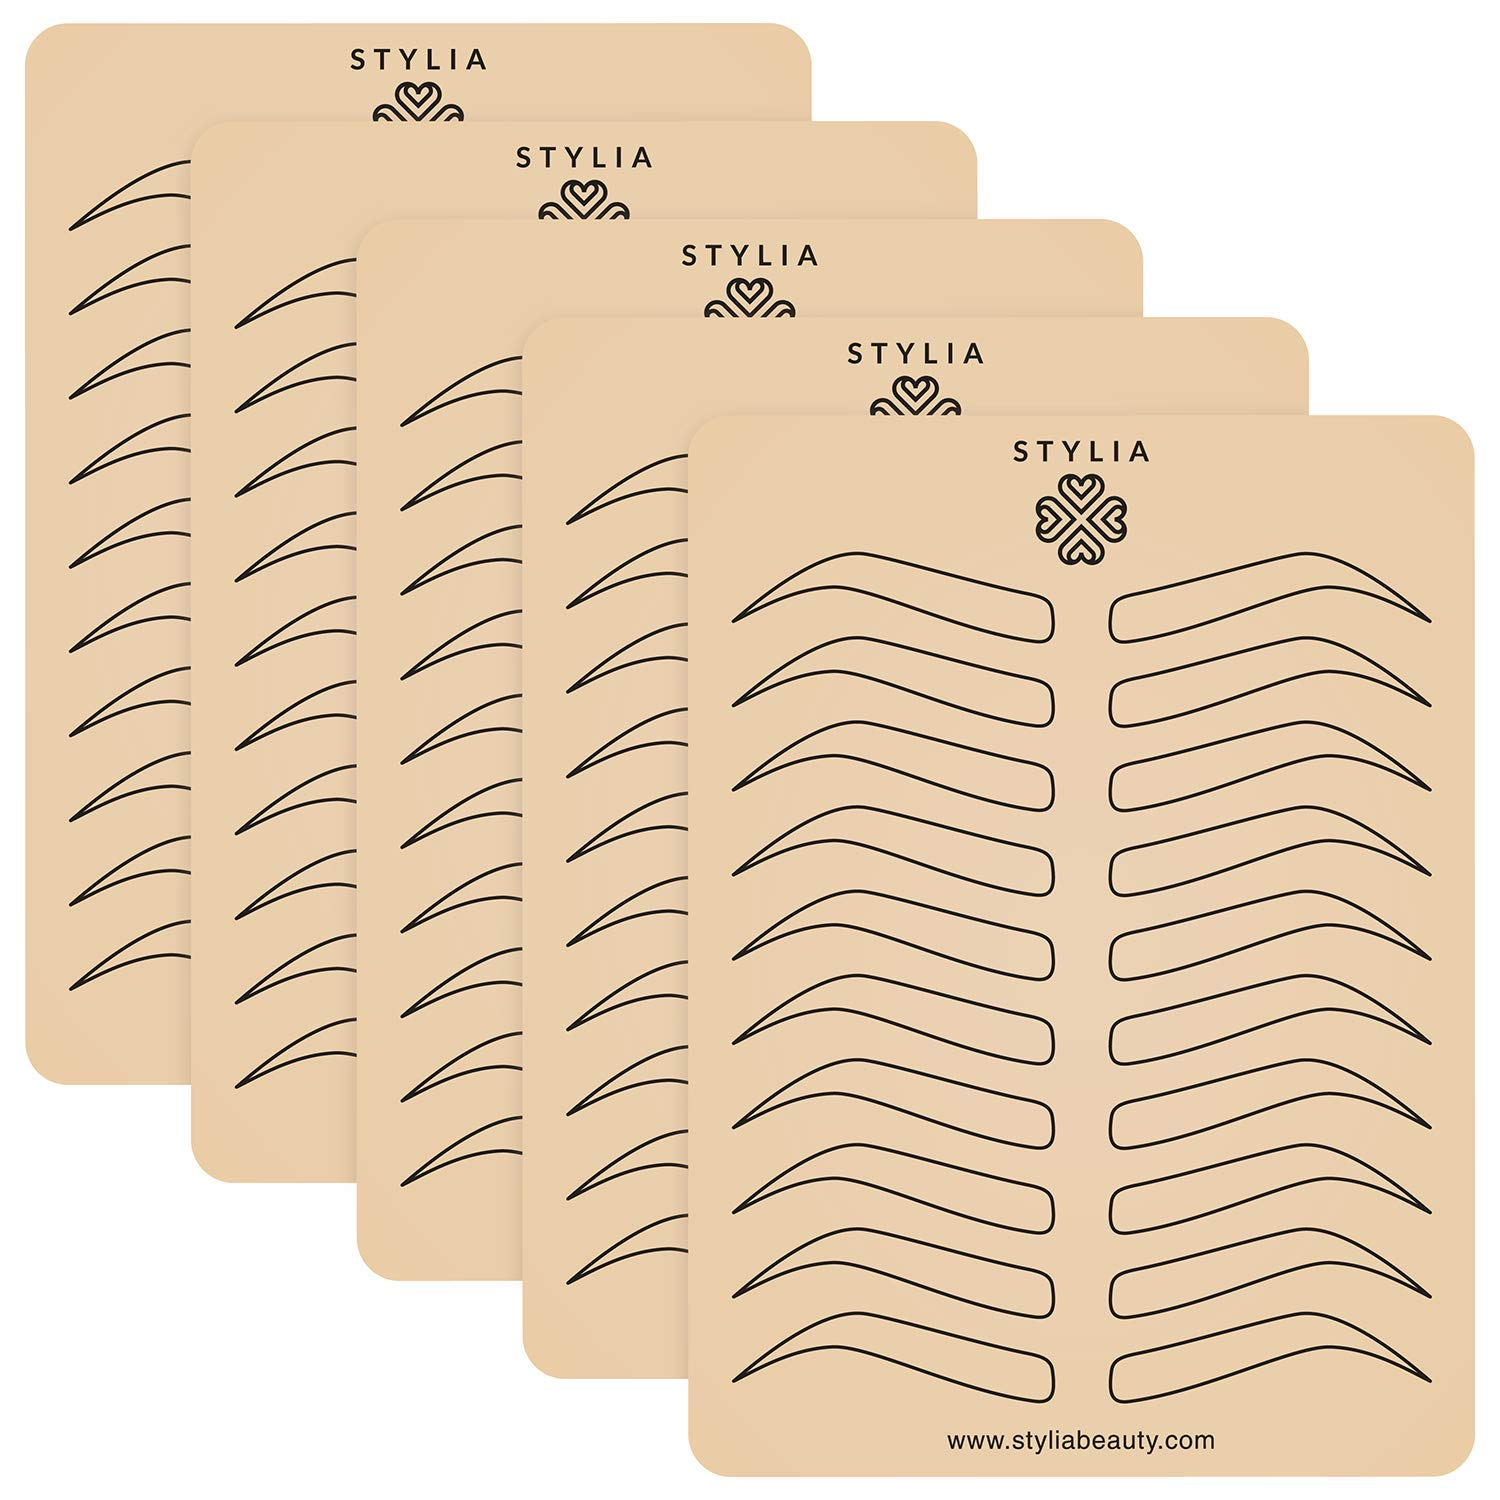 Microblading Supplies 5 Piece Inkless Double Sided Practice Skin For Eyebrow Tattoos: Permanent Makeup Silicone Skins To Practice Brow Micro-Blading And Needling, Fake Skin Sheets